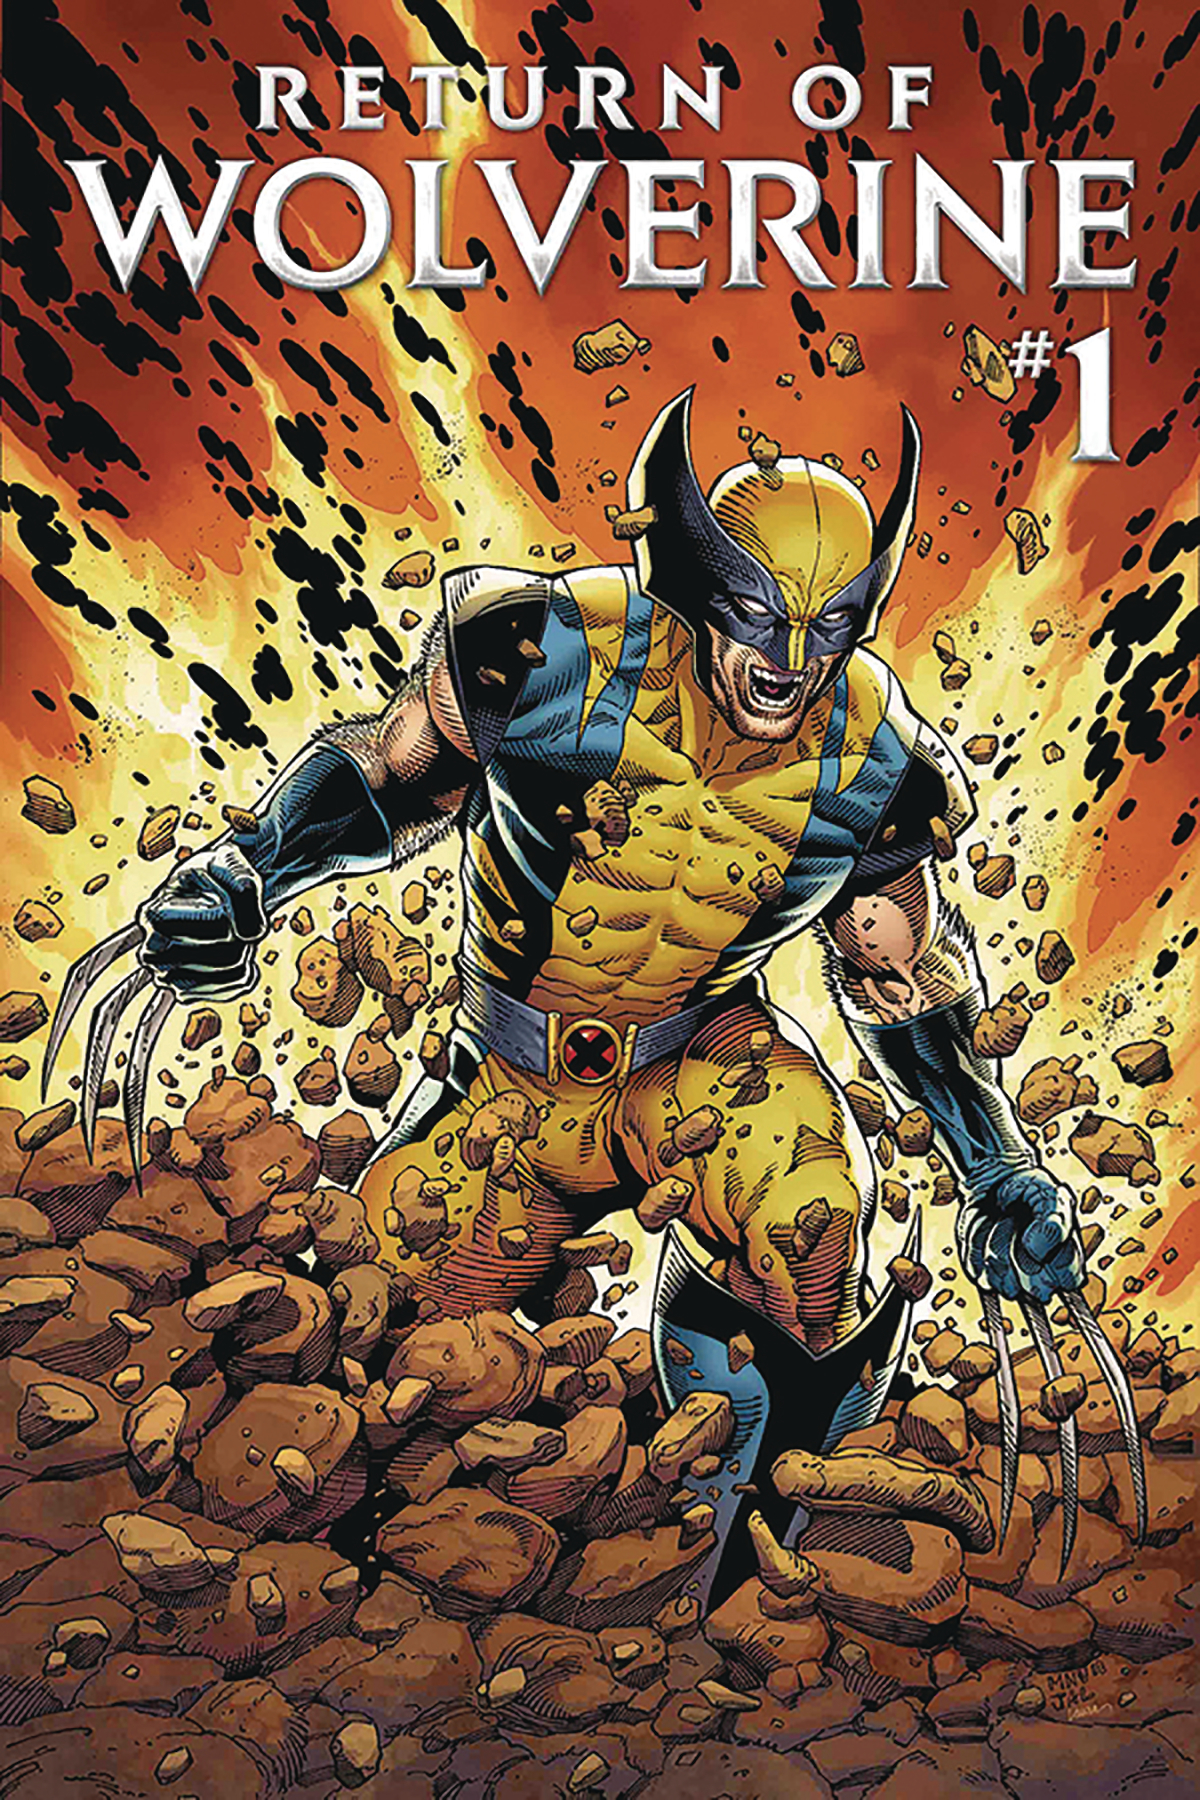 DF RETURN OF WOLVERINE #1 SGN ROMITA SR